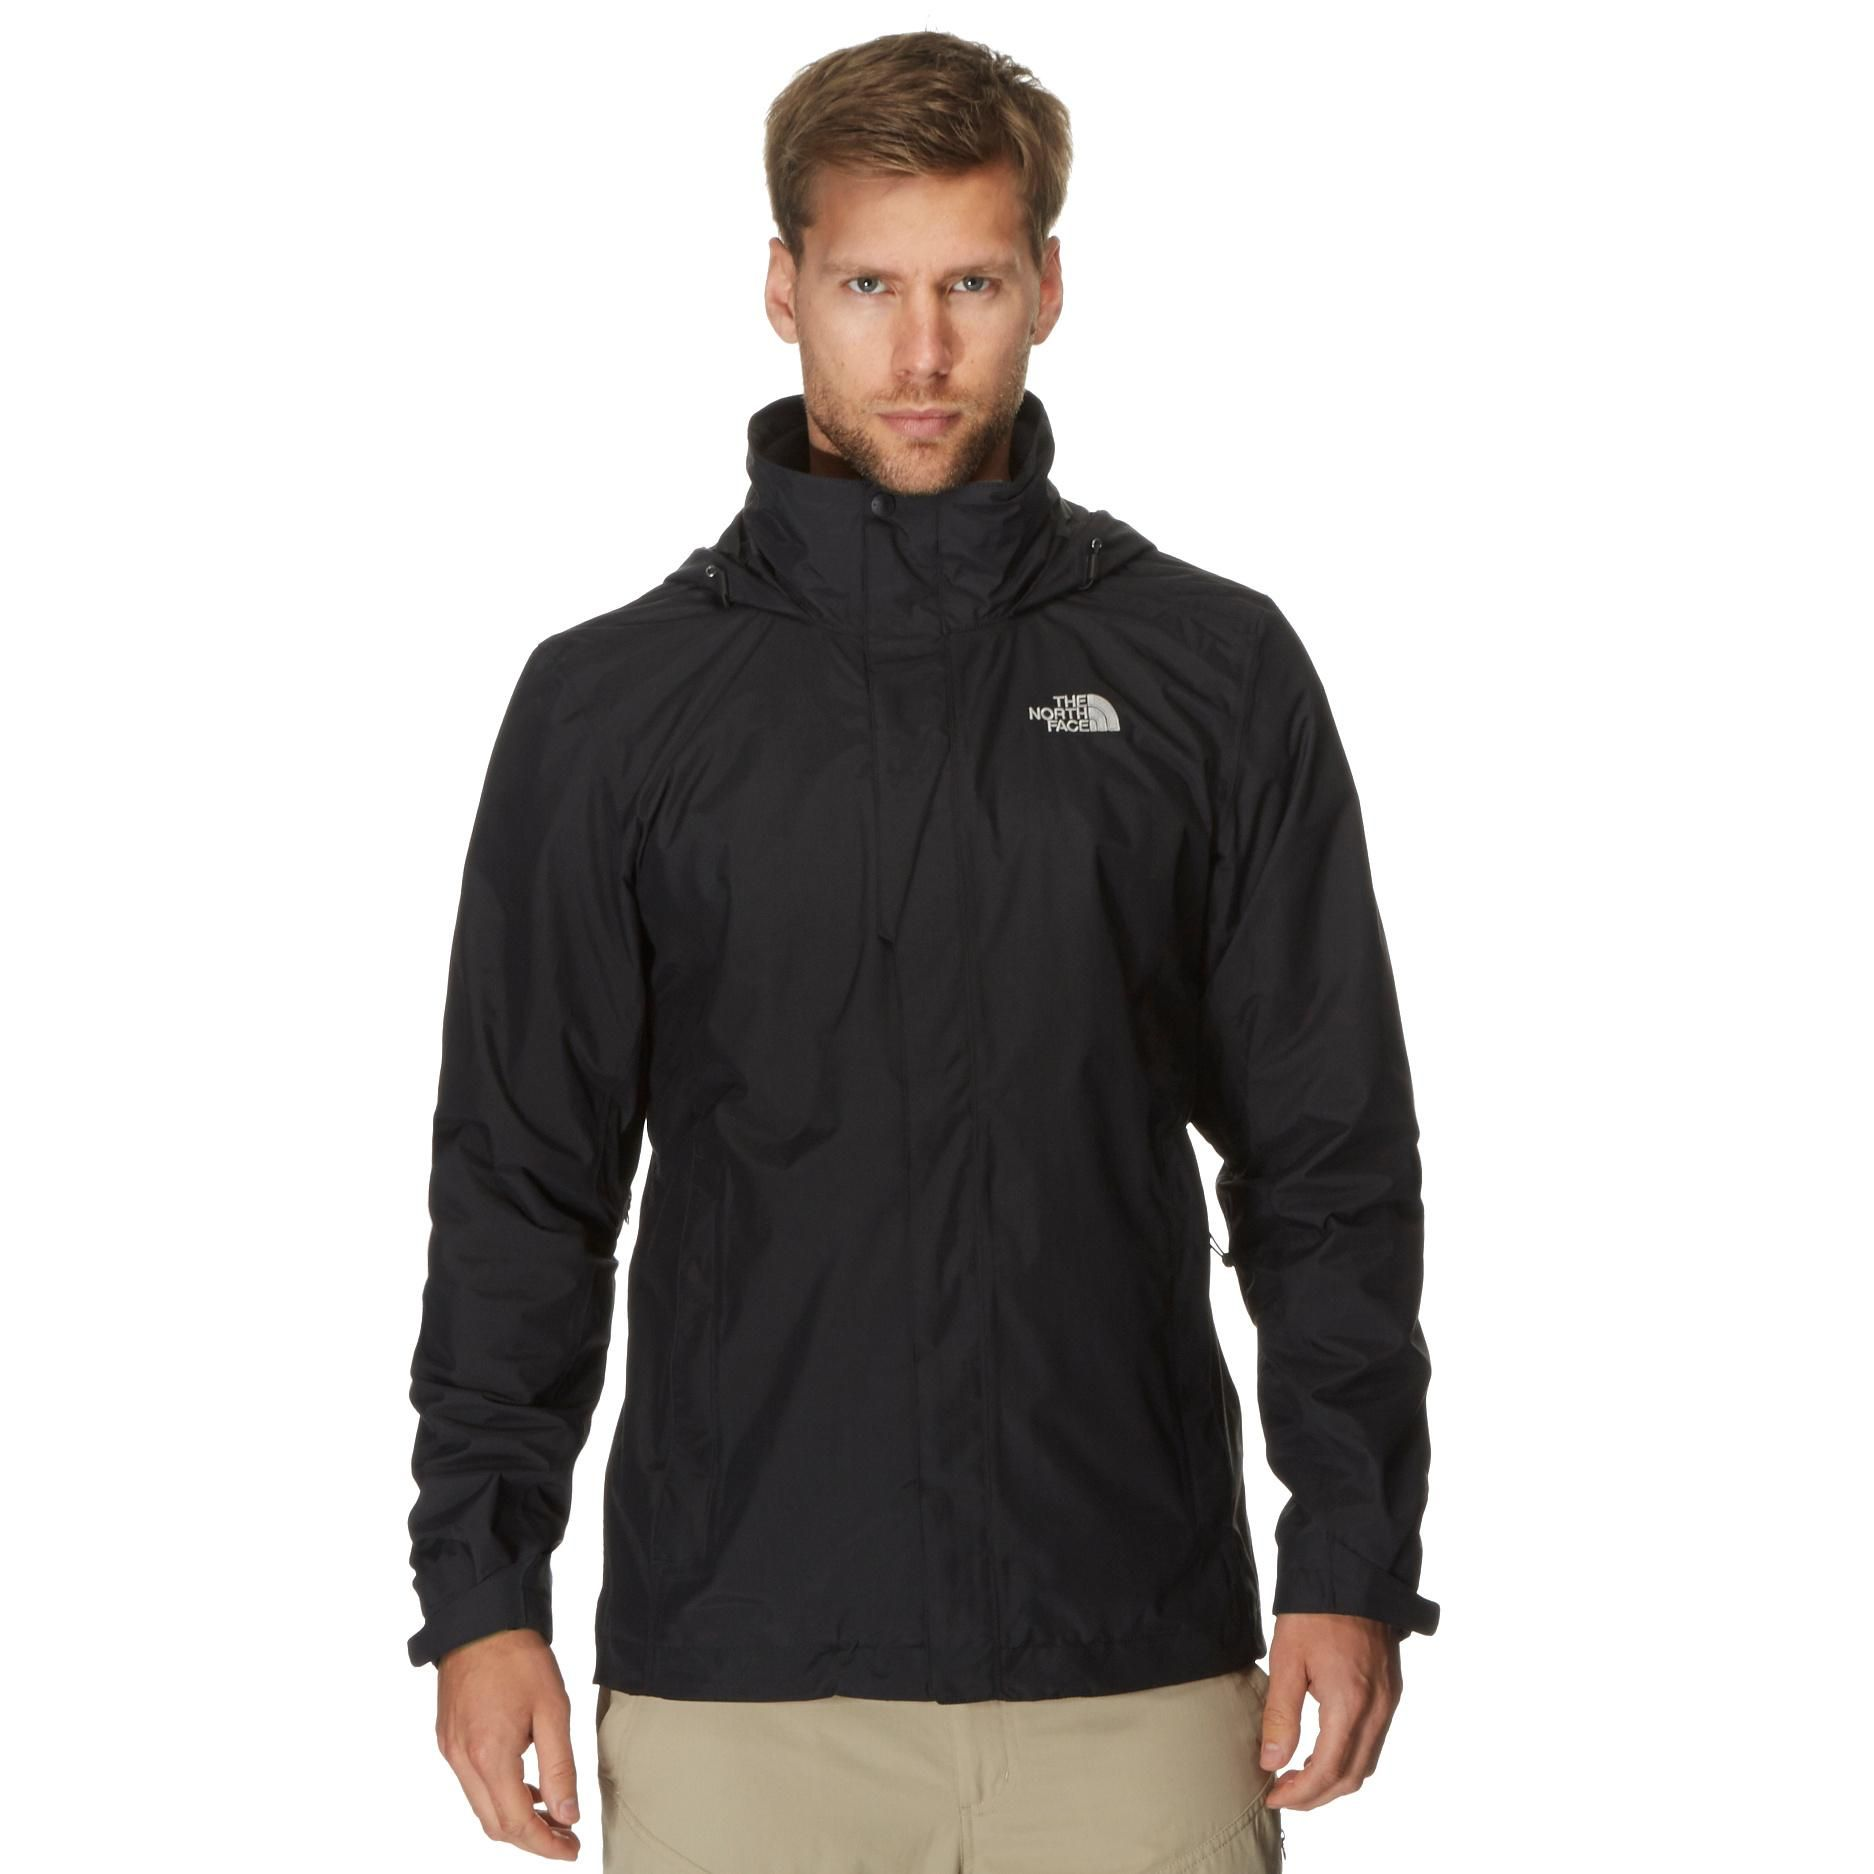 THE NORTH FACE Men's Evolution TriClimate® 3 in 1 Jacket   south ...